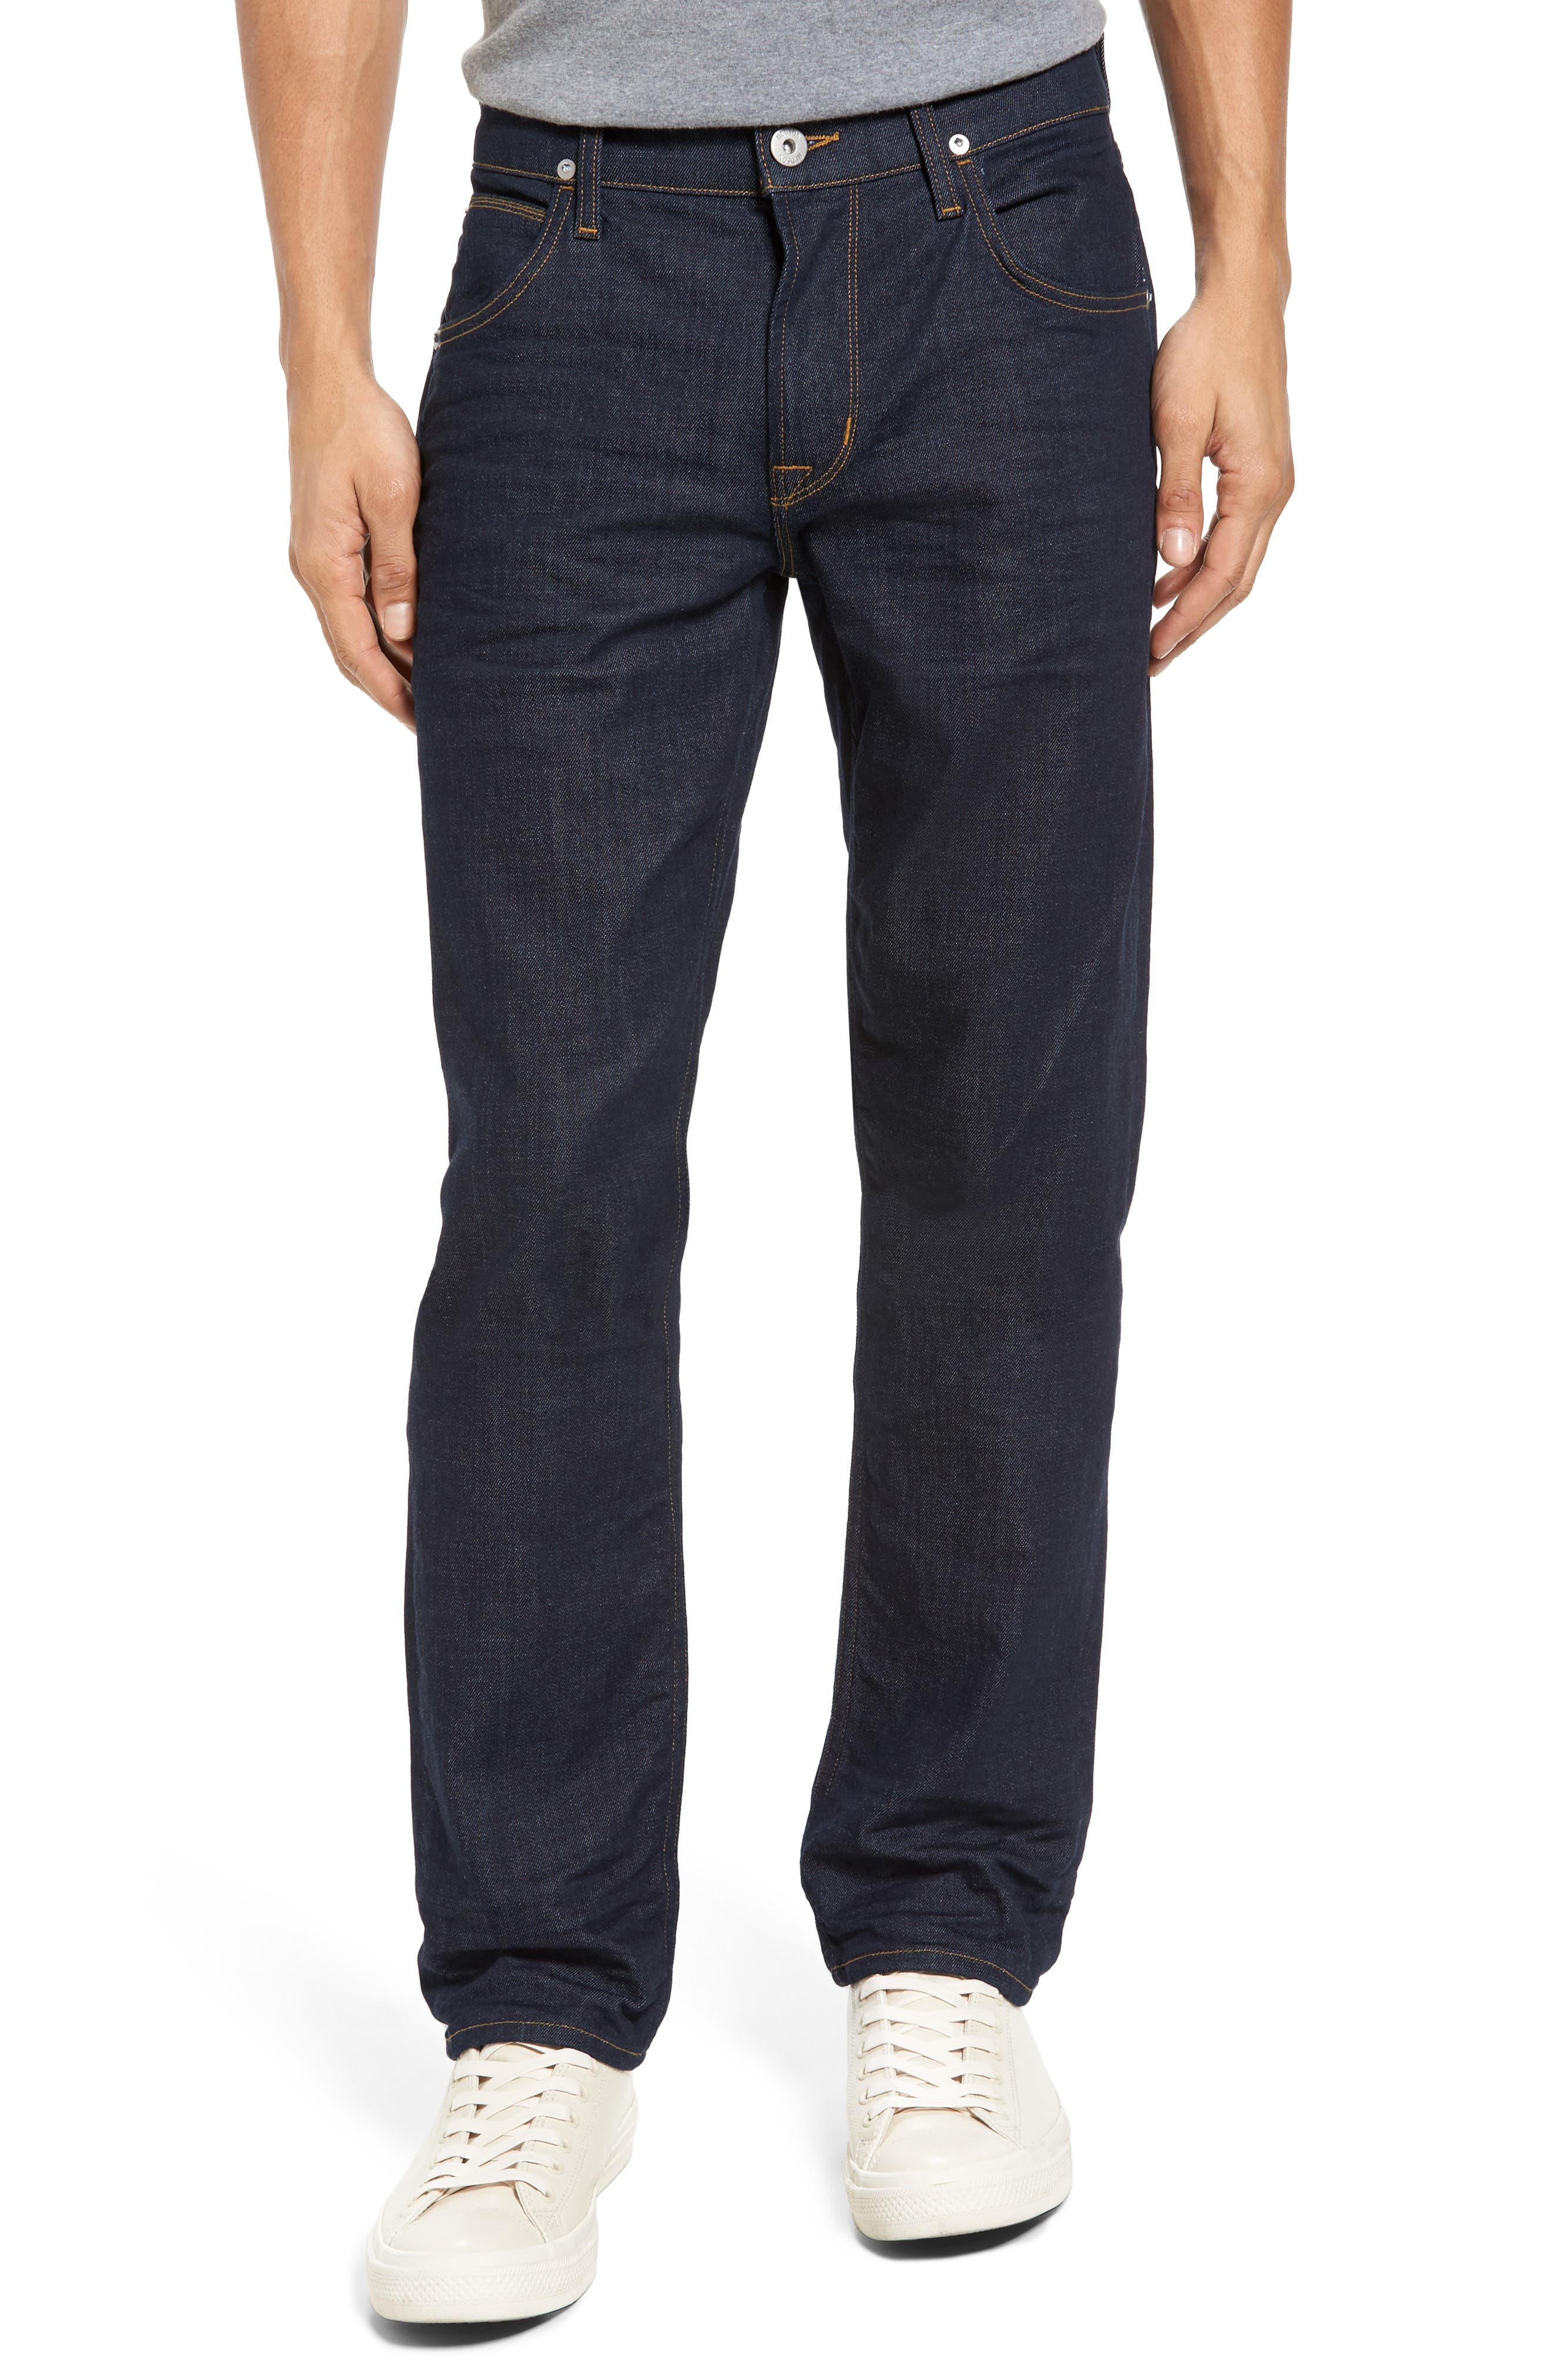 Blake Slim Fit Jeans,                         Main,                         color, Anonymous